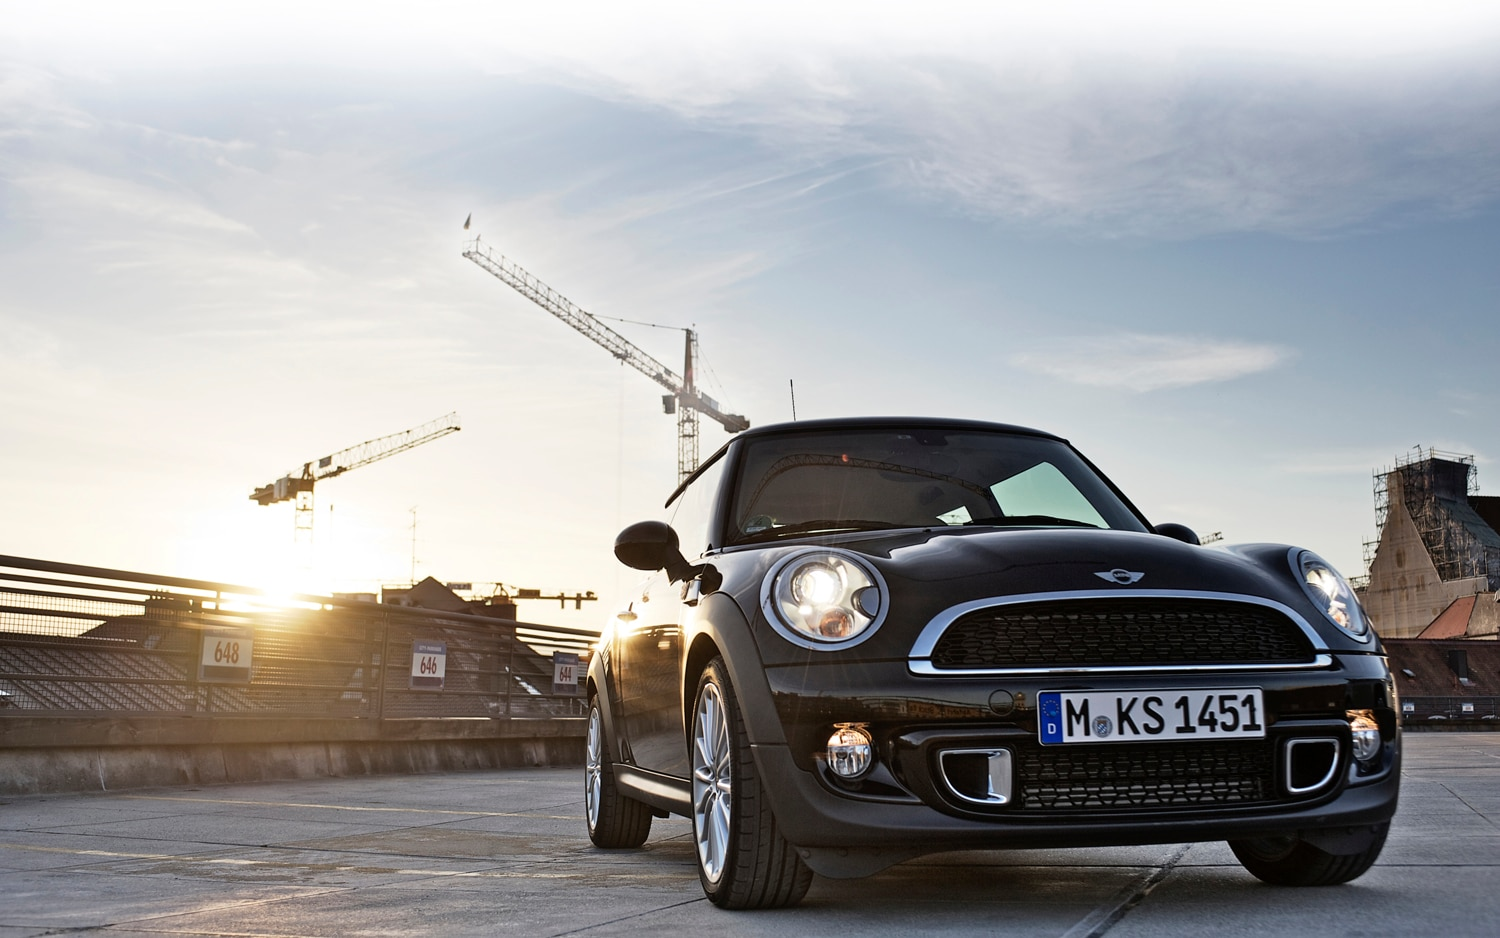 Mini Cooper S Inspired By Goodwood Front View1